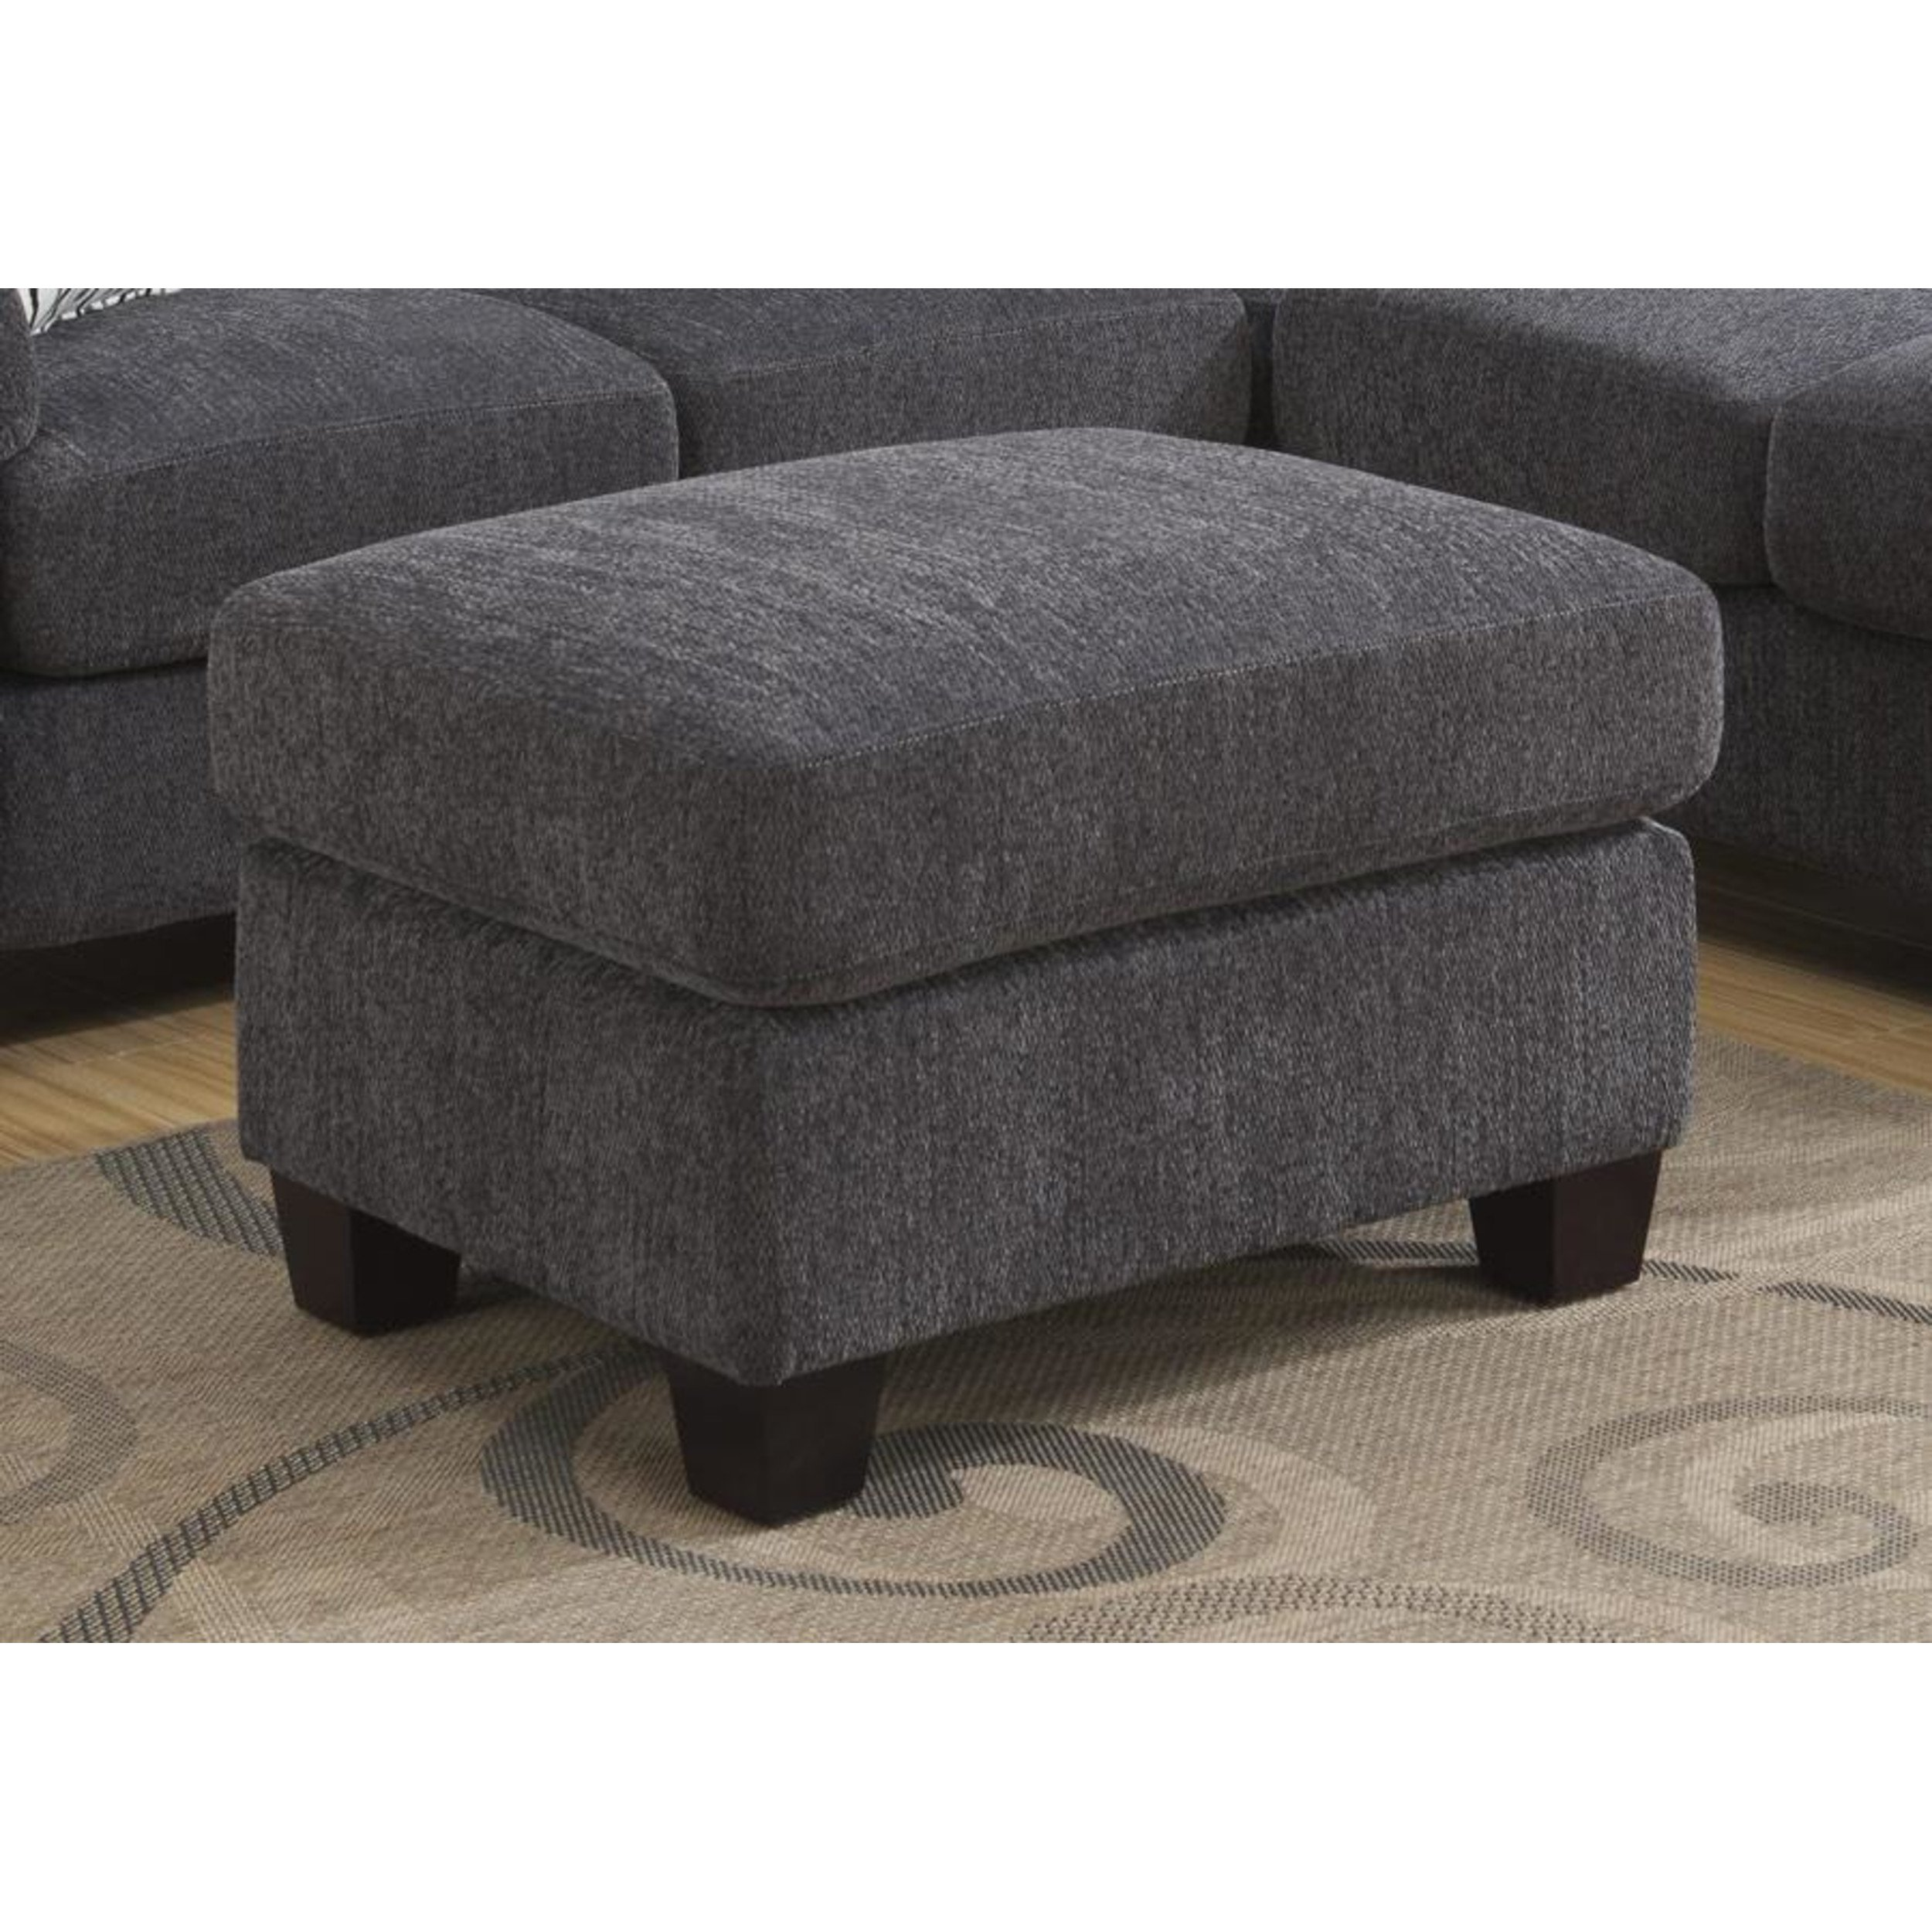 Emerald Home Clayton II Charcoal Ottoman with Fixed Cushion And Block Feet by Emerald Home Furnishings